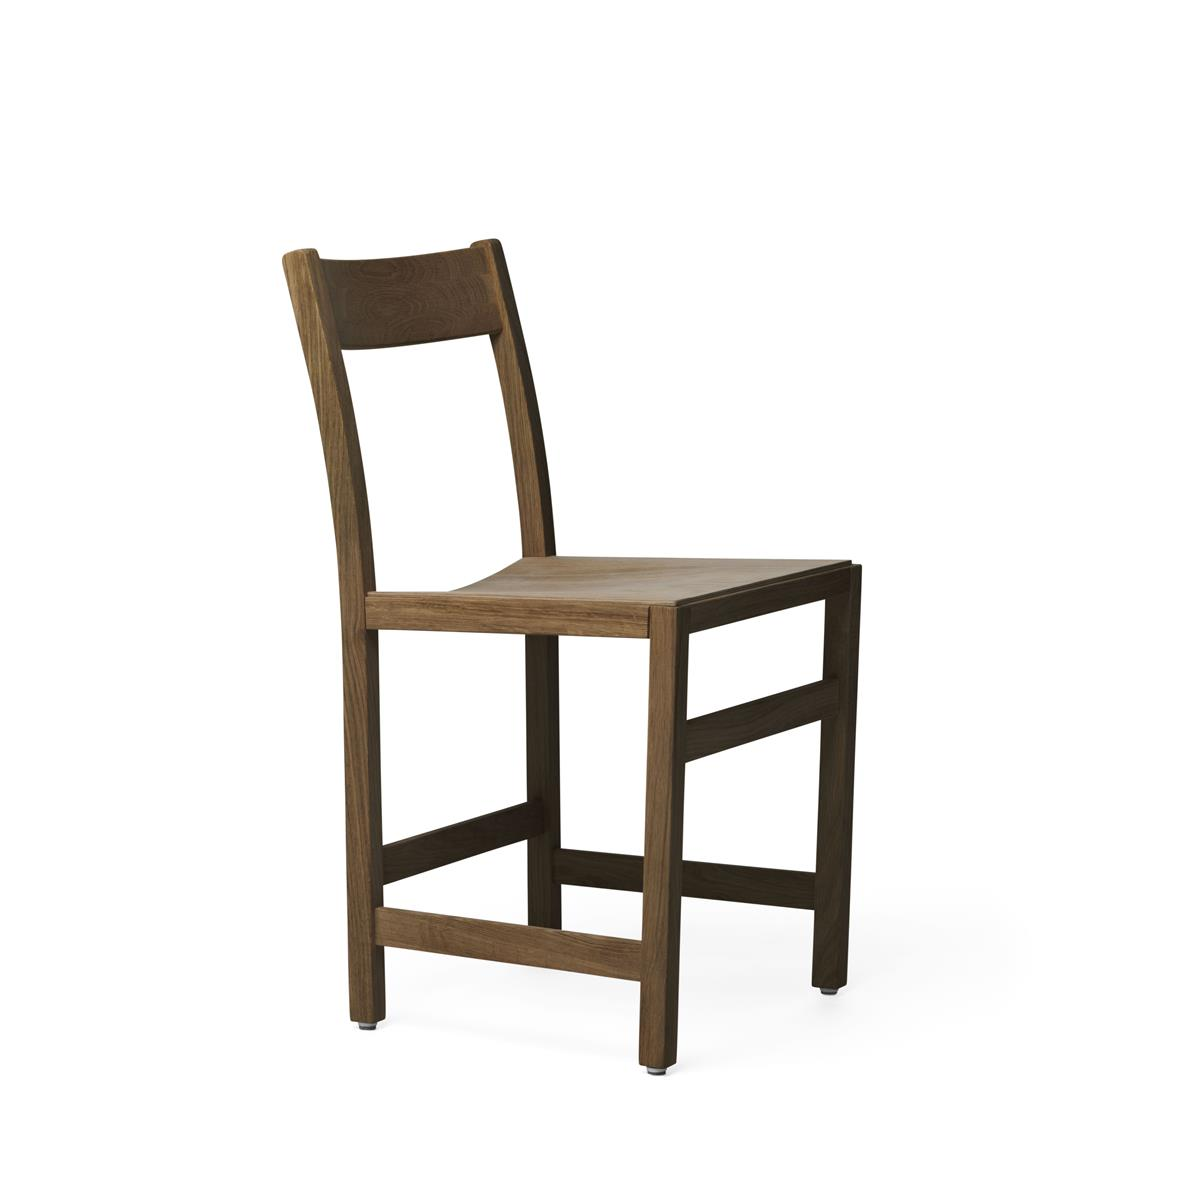 Waiter Chair - Walnut Stained Beech